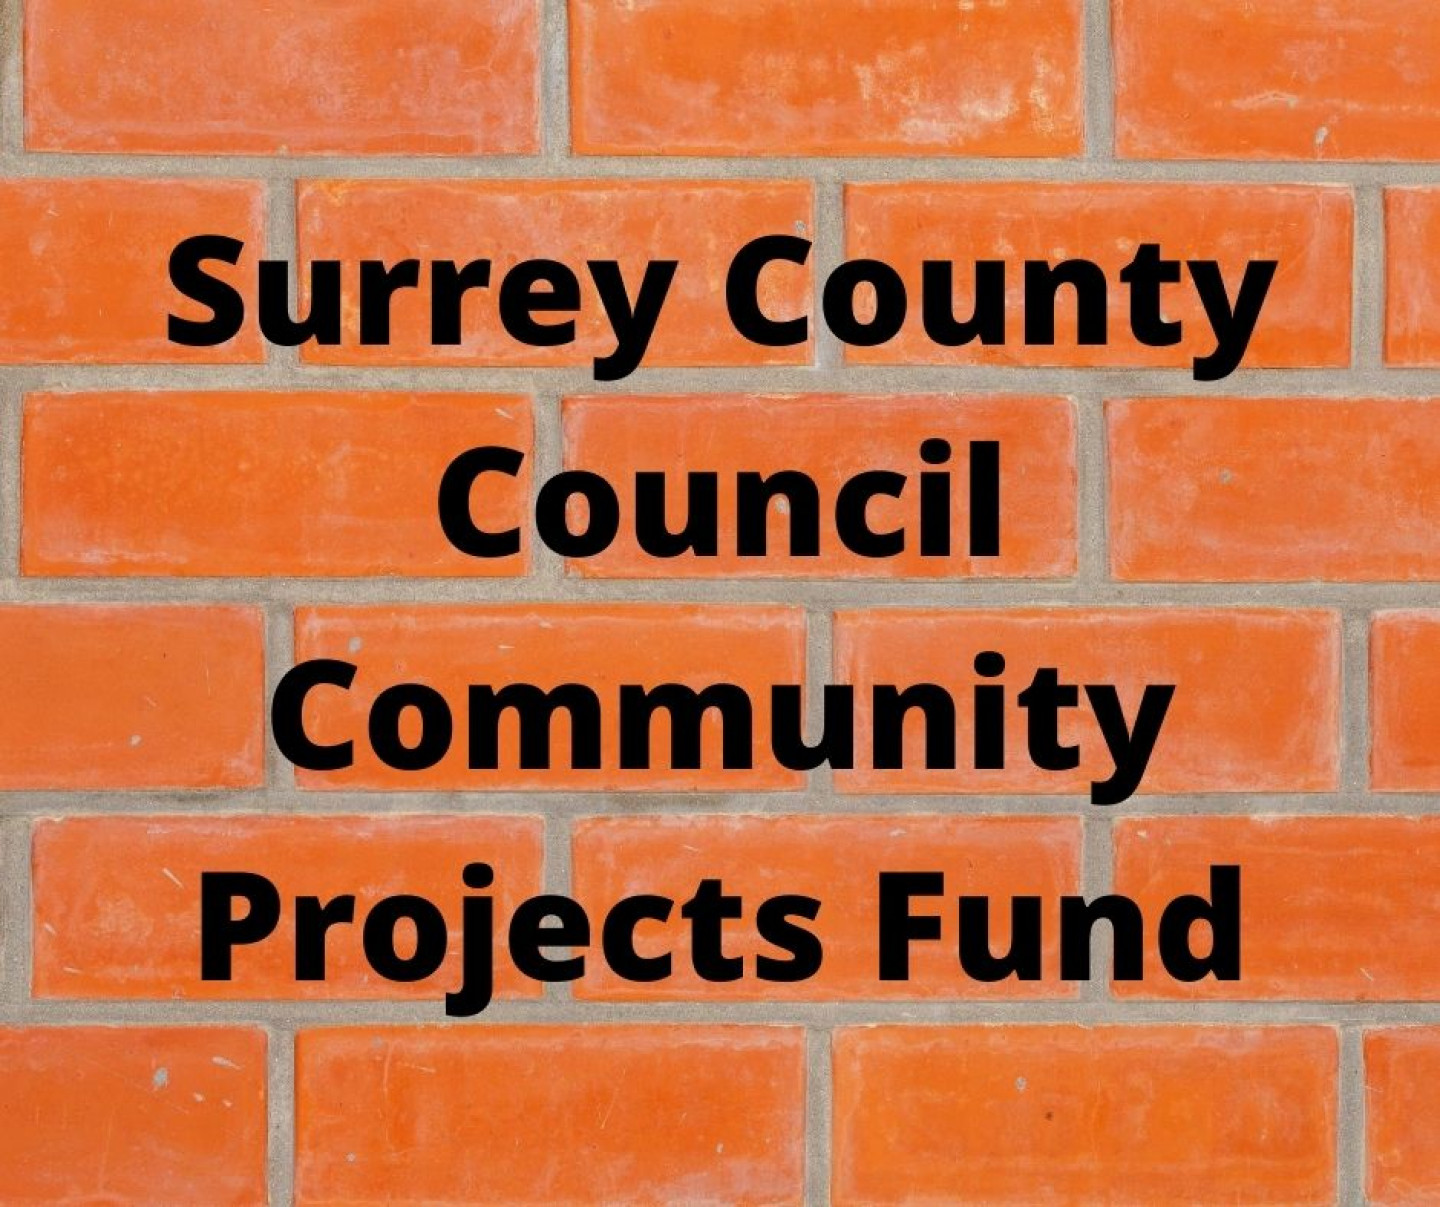 Surrey County Council Community Fund